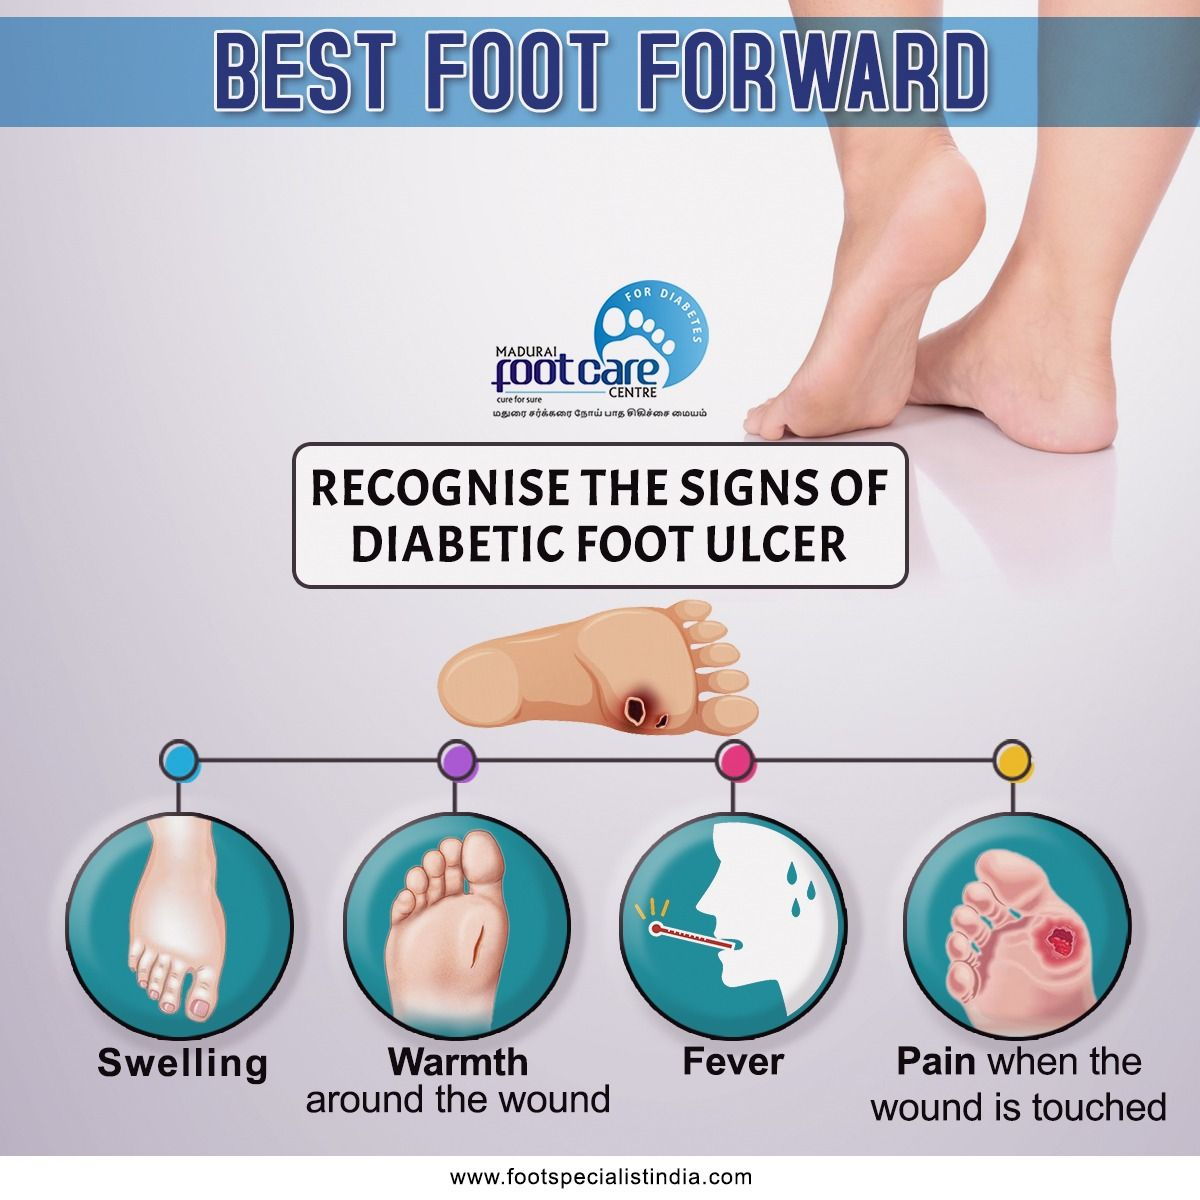 Diabetic foot ulcers are lesions on the feet that occurs